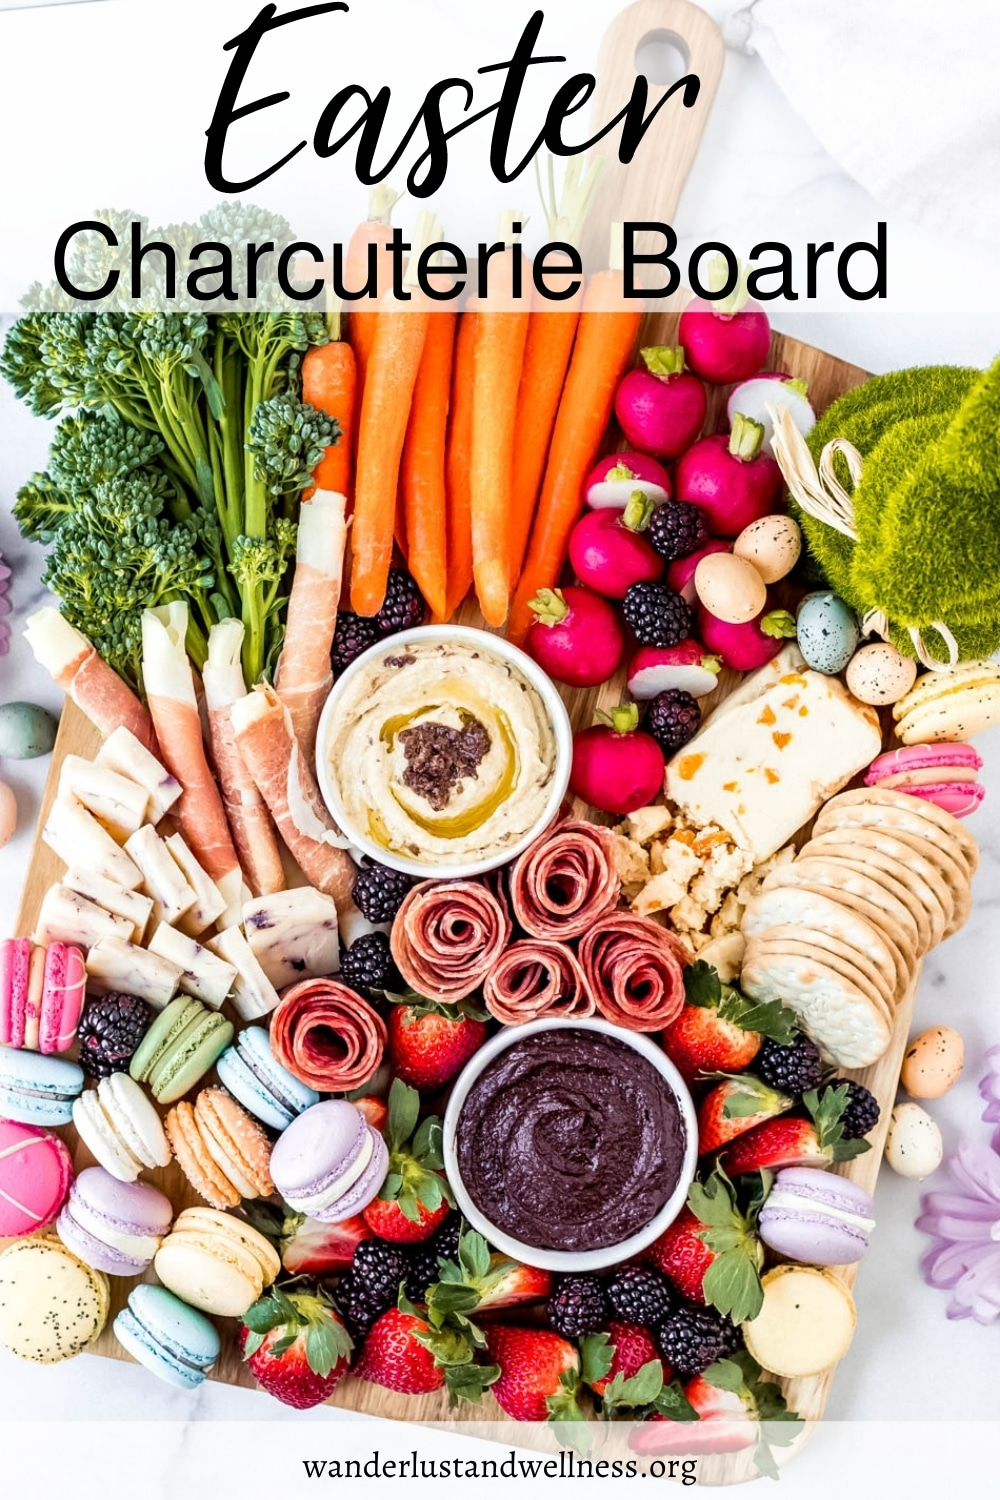 an Easter charcuterie board with fruits, vegetables, meat, cheese and sweet Easter treats